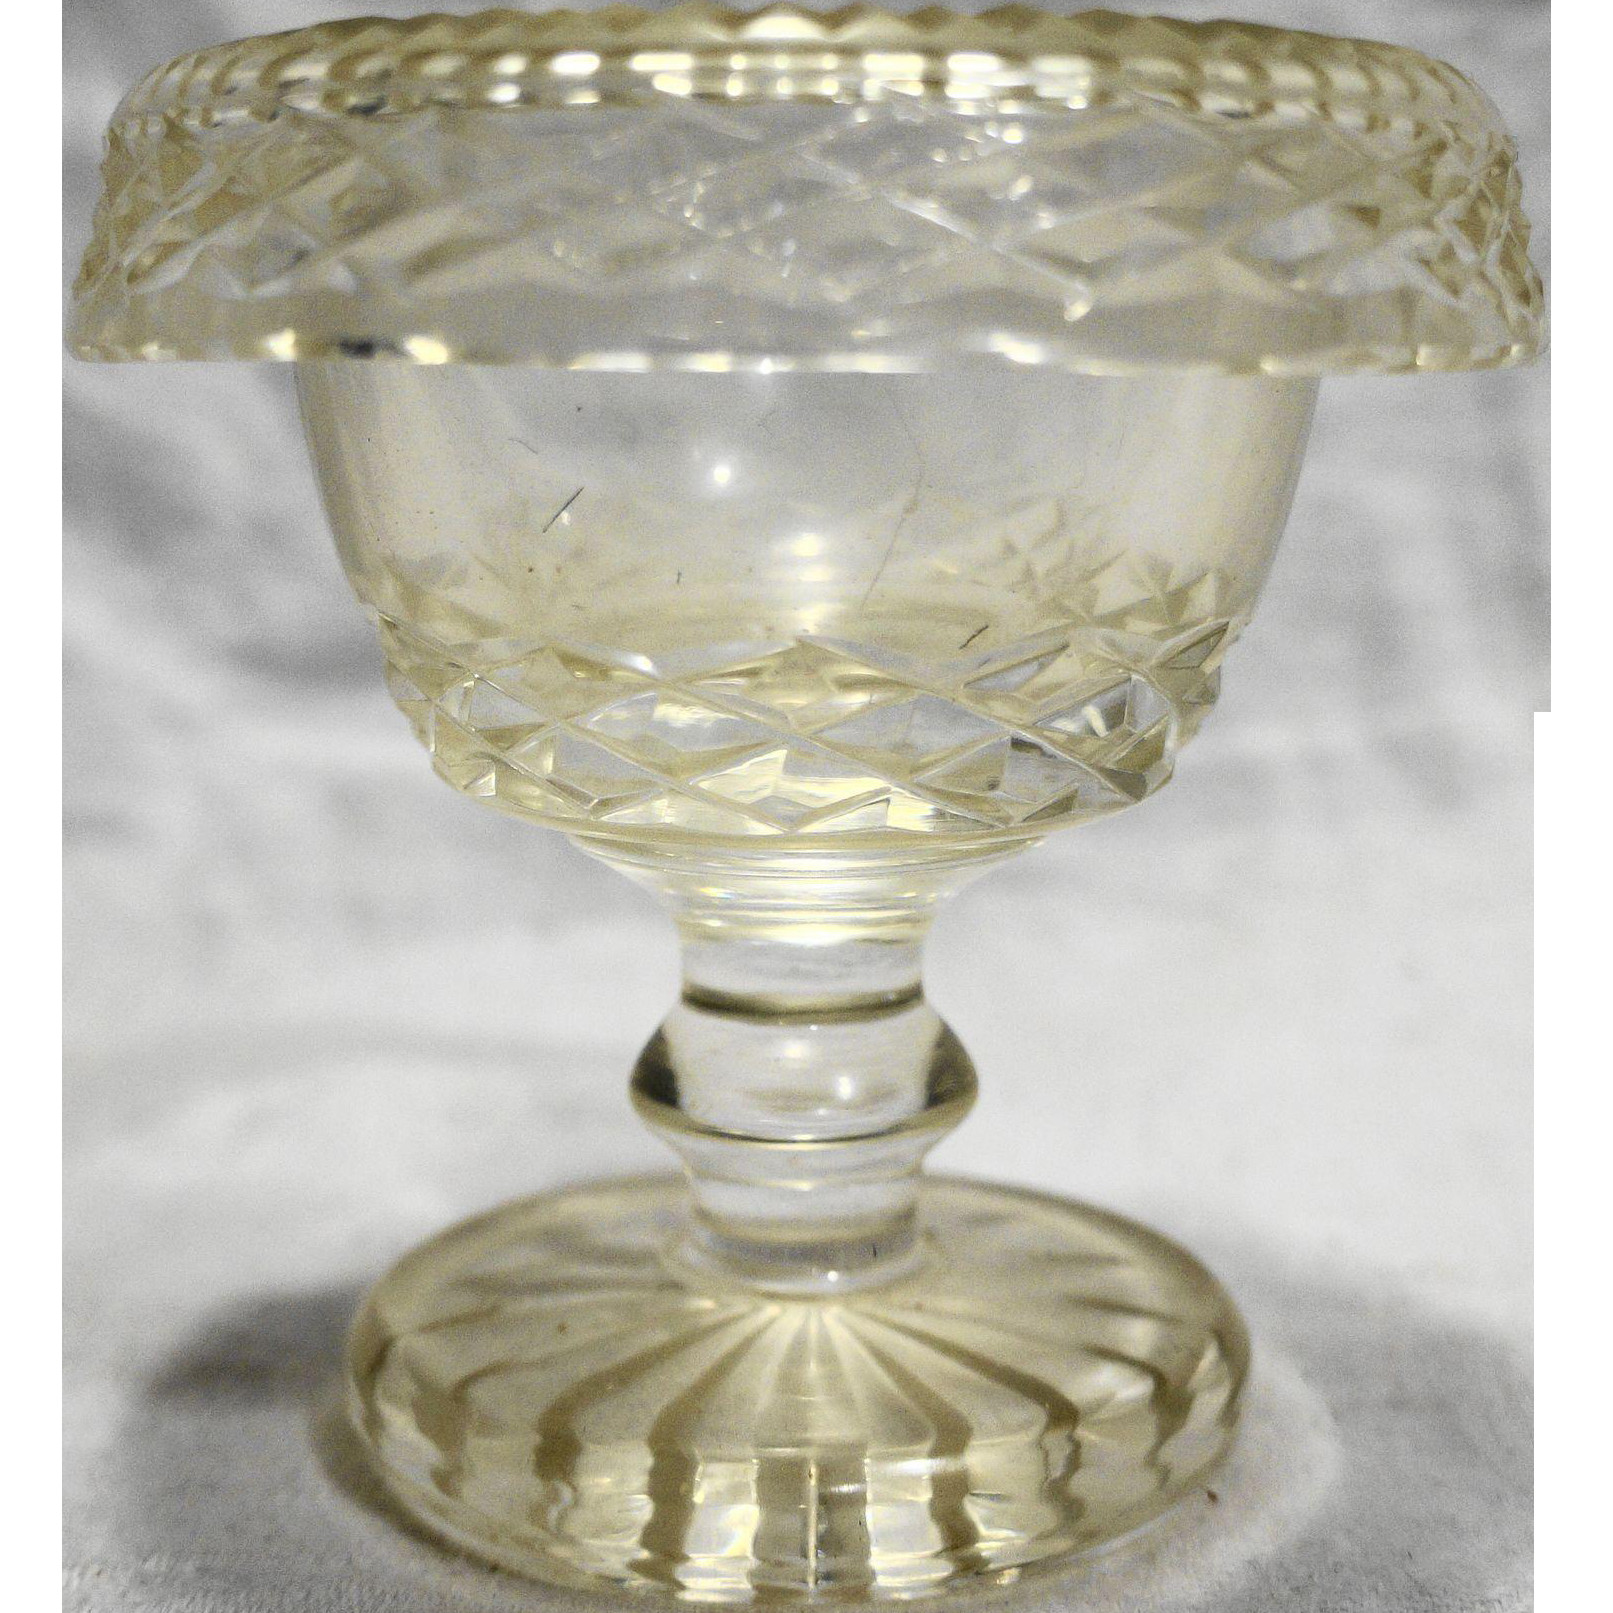 waterford vases on sale of waterford crystal master salt rolled rim 3 5 8 in waterford in waterford crystal master salt rolled rim 3 5 8 in